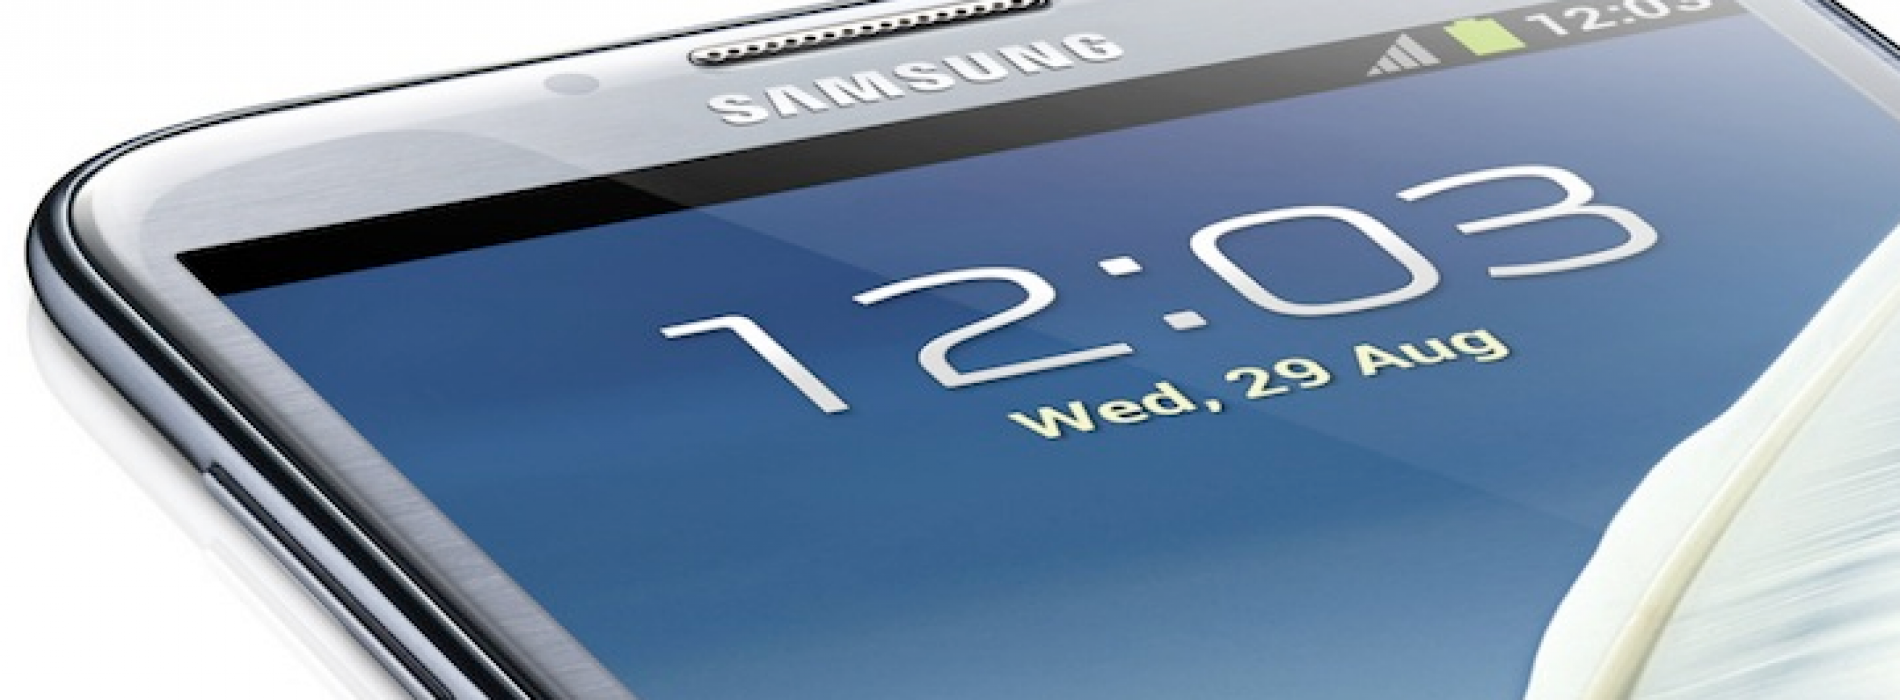 Samsung T889 headed to T-Mobile as Galaxy Note II?